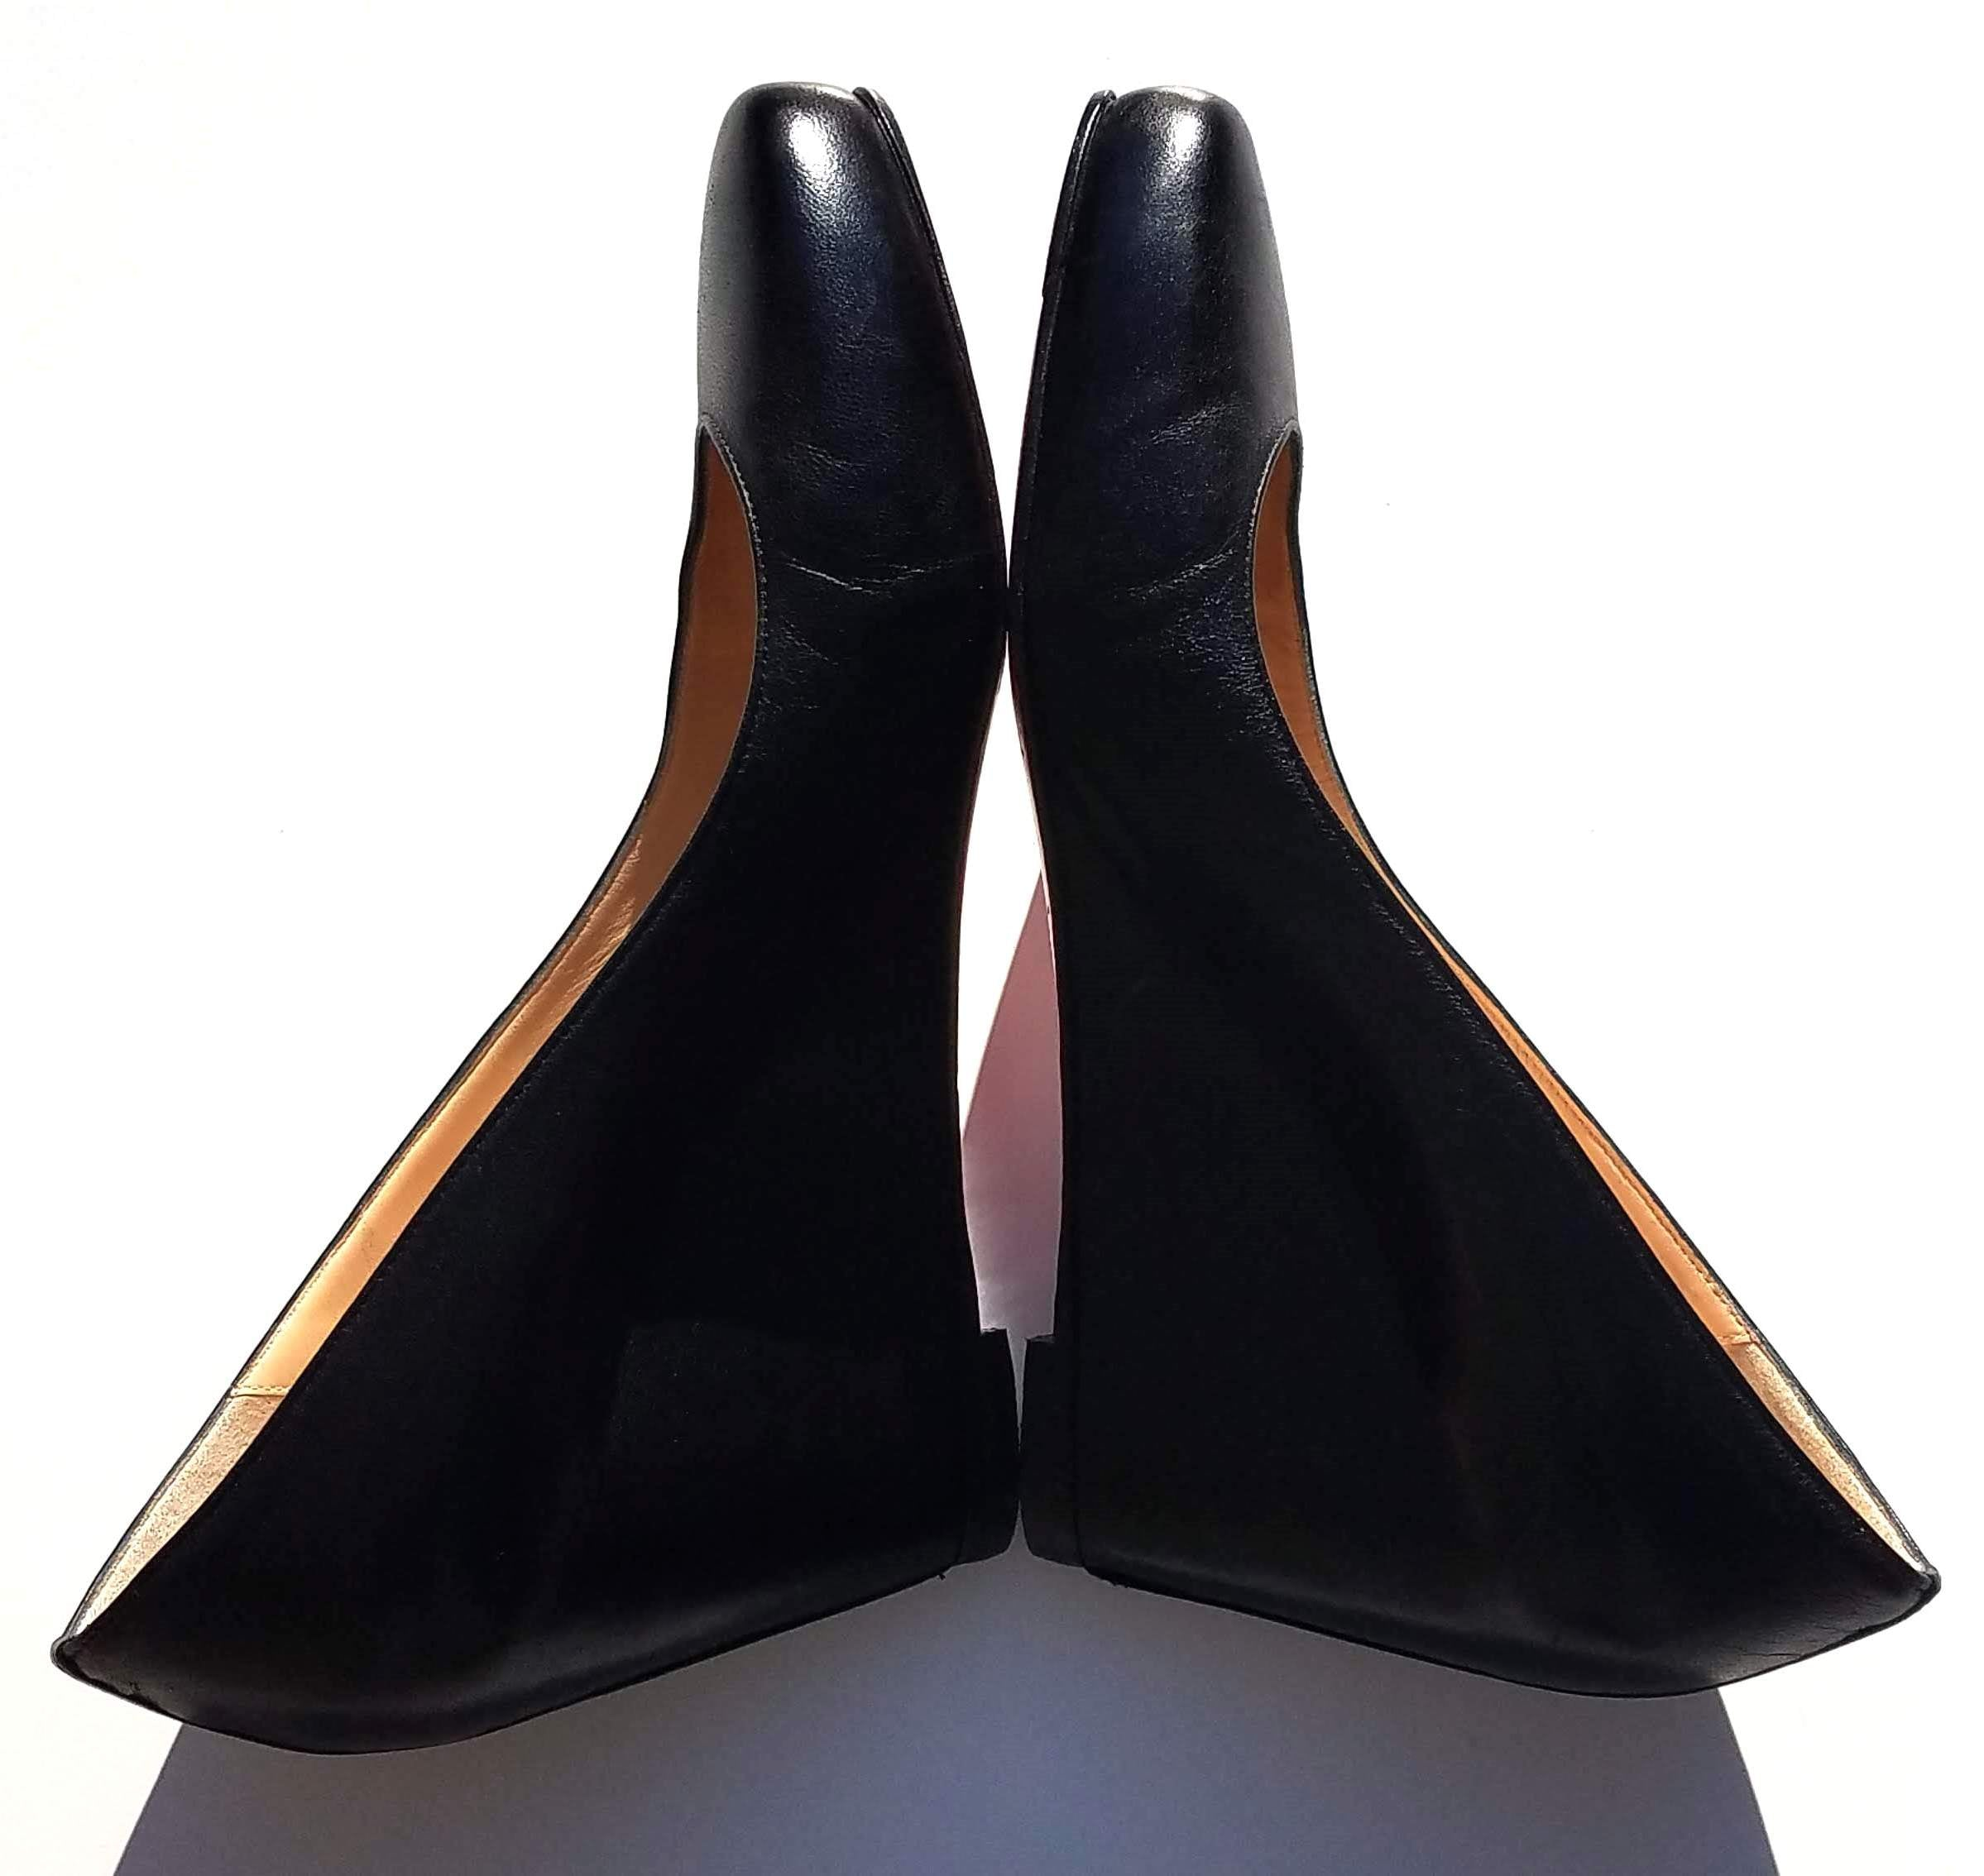 'Sold' CHRISTIAN LOUBOUTIN Melisa 70 Black Leather Covered Wedge Heels Pumps 39.5 $775